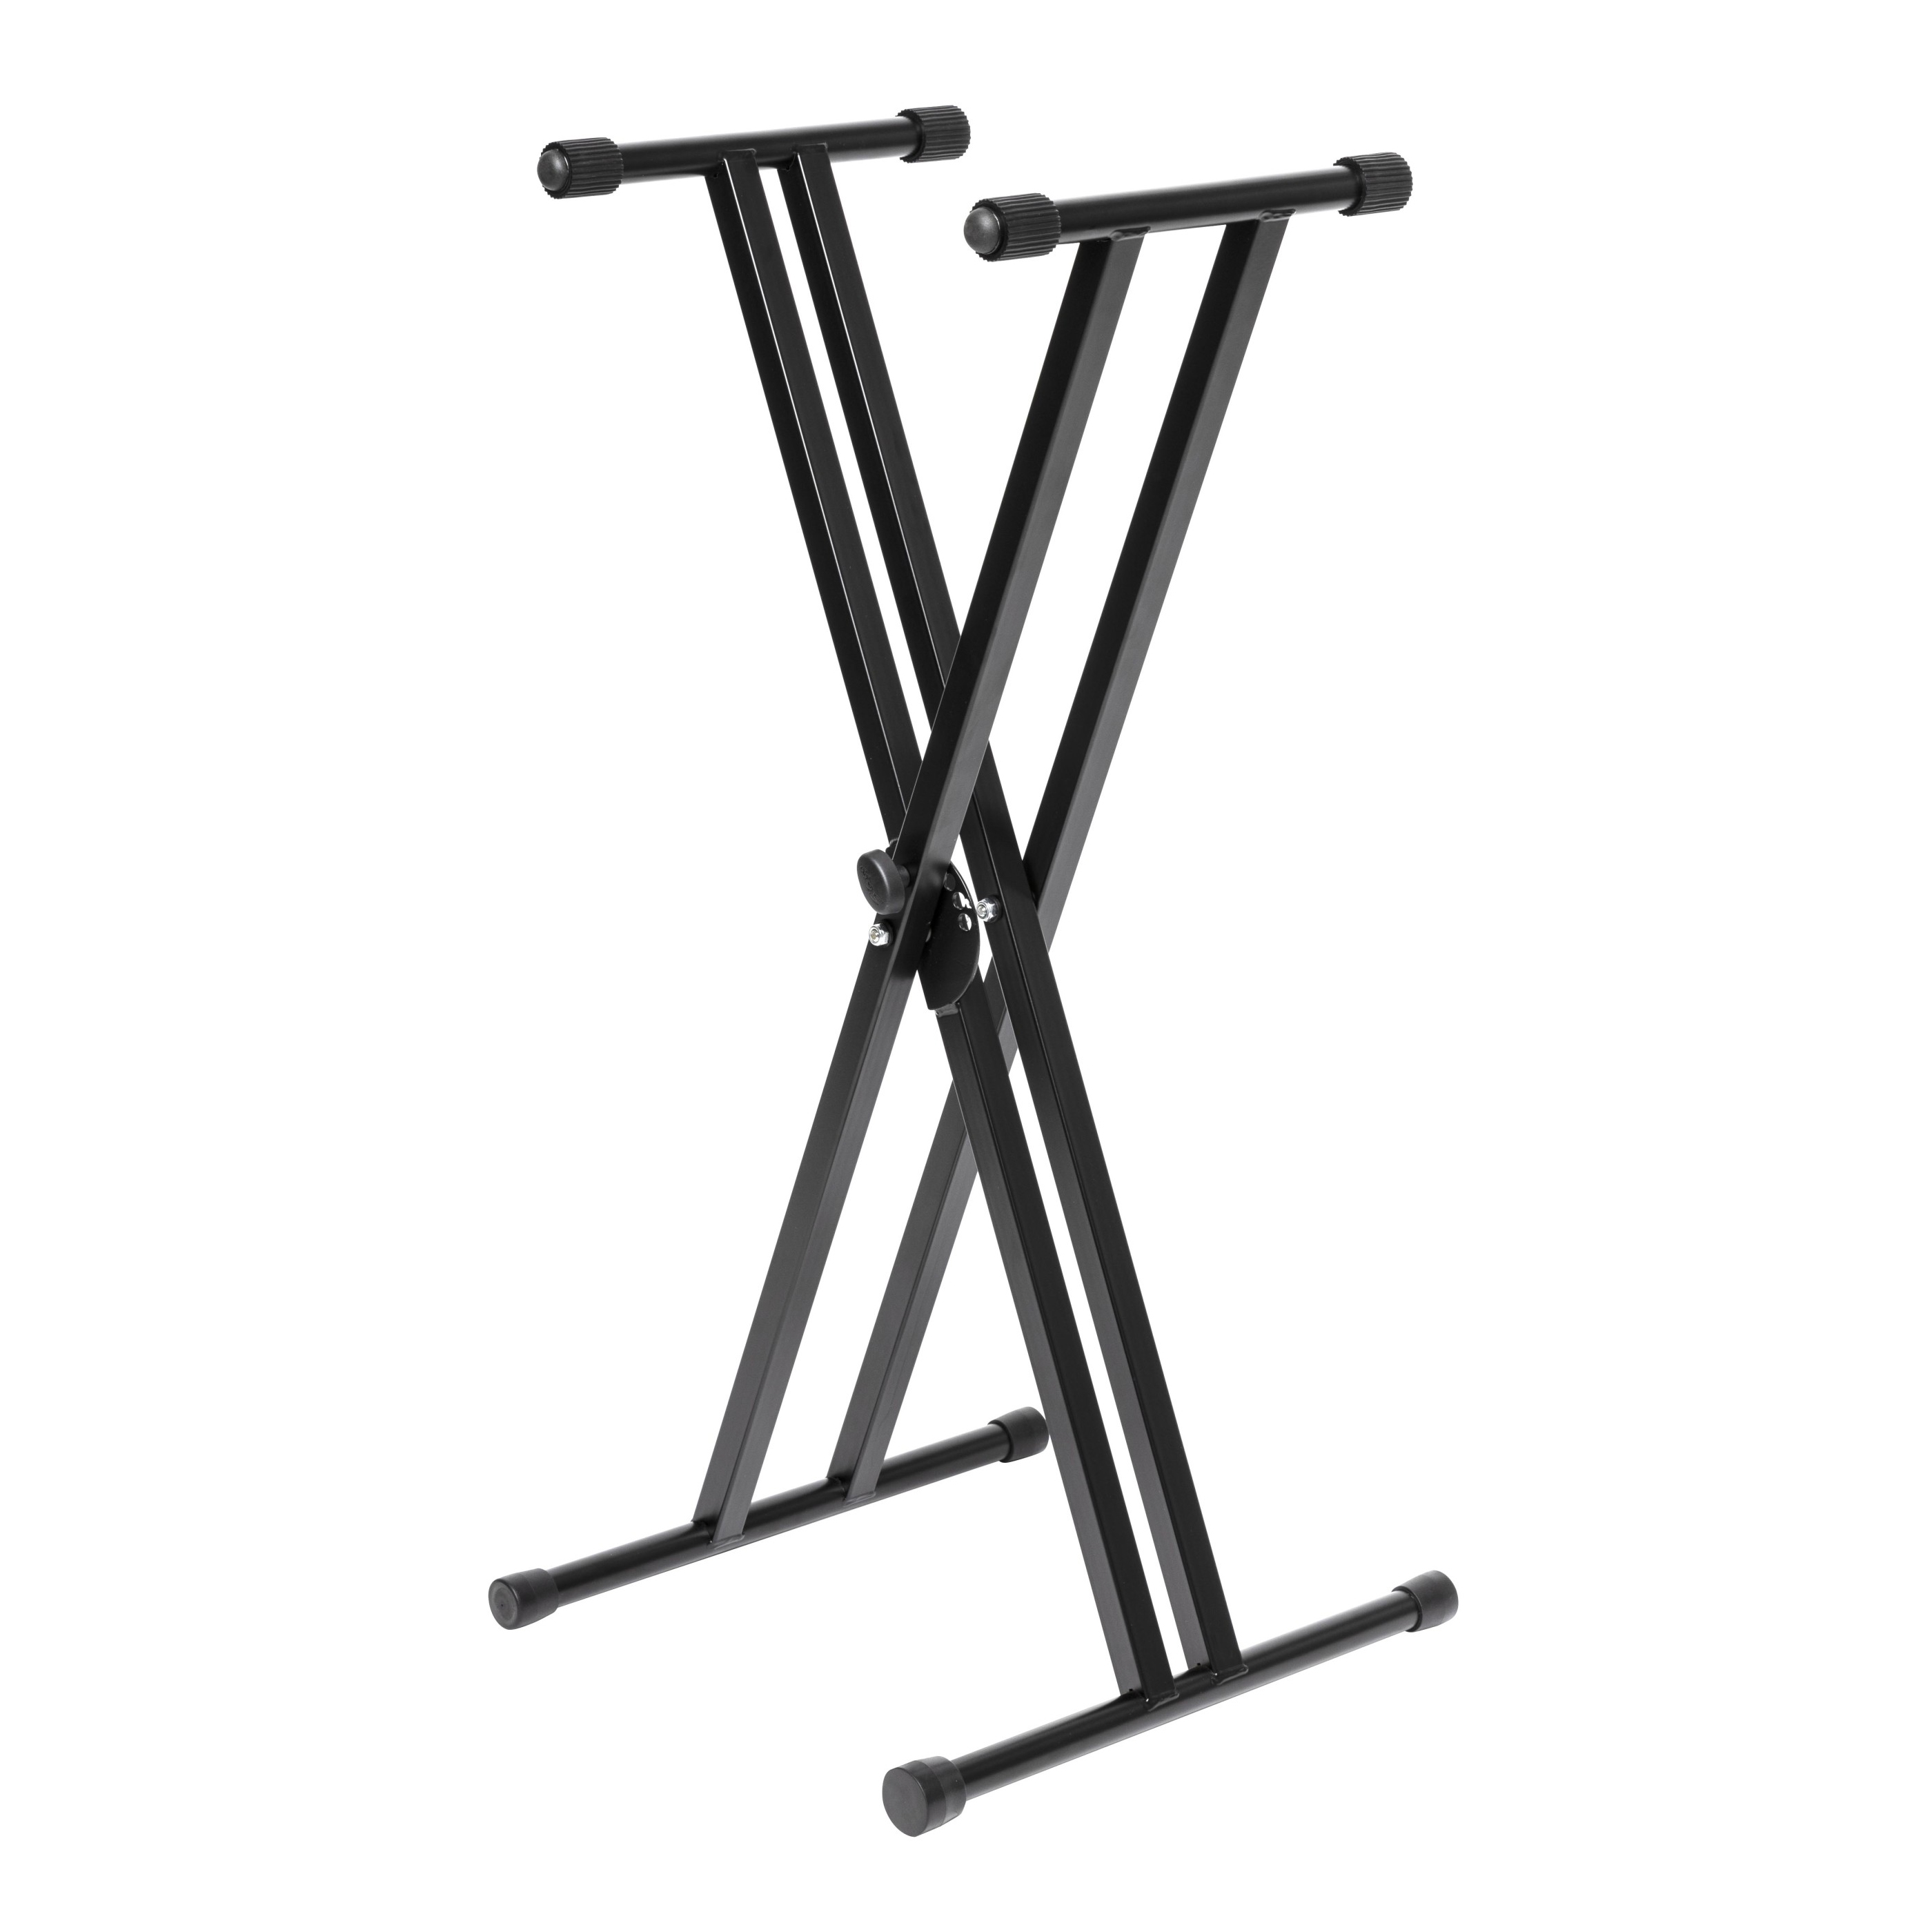 Stagg KXS A6 Double-braced X-style keyboard stand, foldable